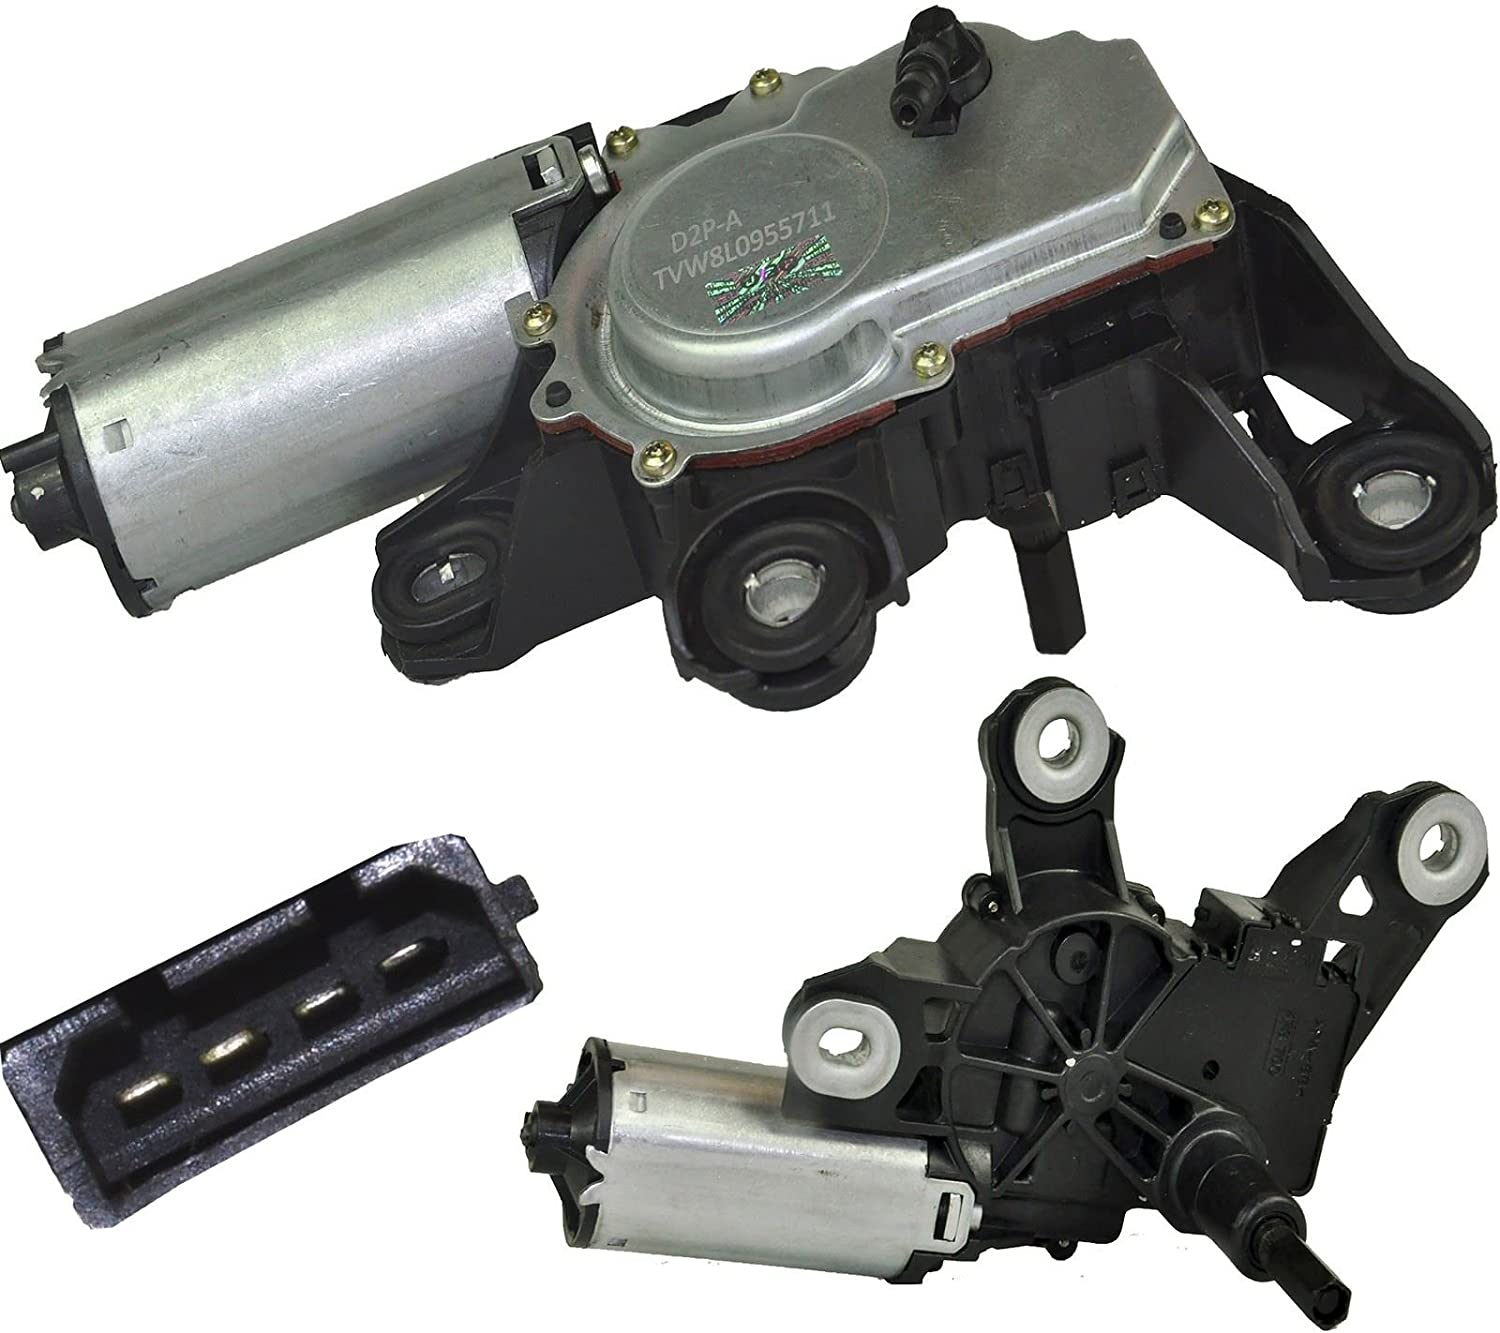 B5 A6 A4 3B9955711C 8L1 /& 8PA D2P REAR WINDSCREEN WIPER MOTOR FOR A3 /& PASSAT 3B9955711B C5